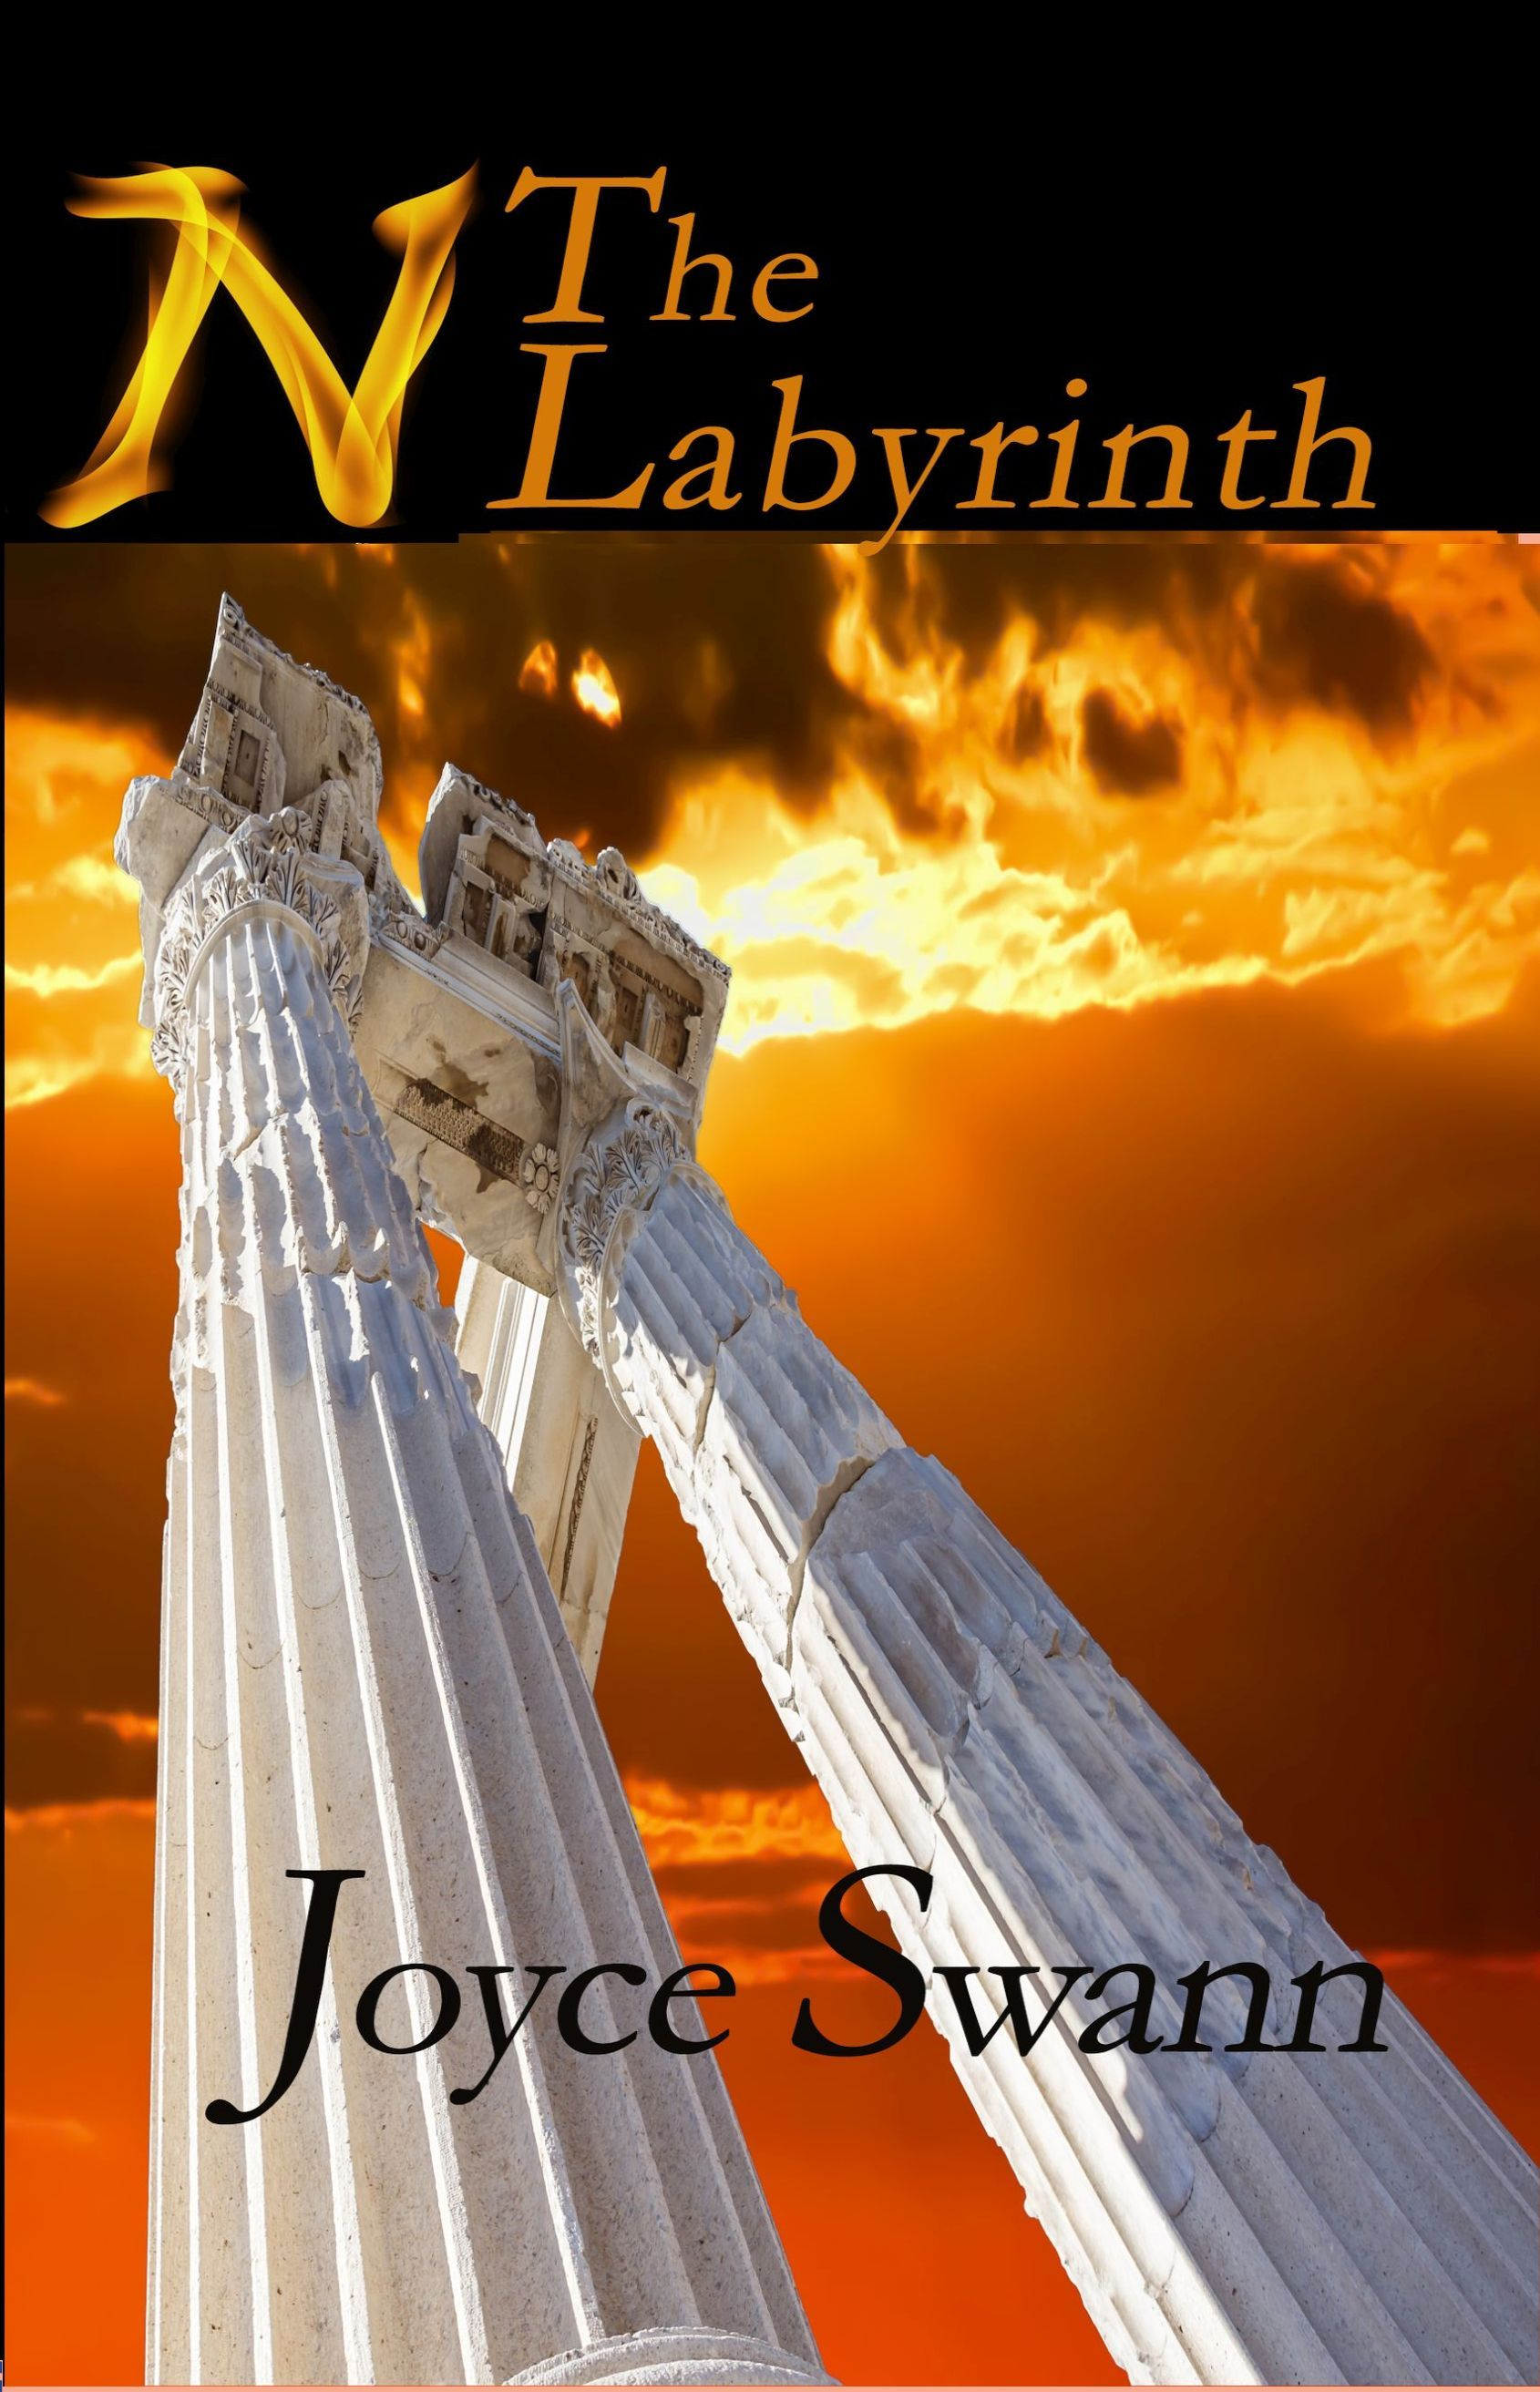 https://0201.nccdn.net/1_2/000/000/146/23f/n-the-labyrinth-cover-for-kindle.jpg